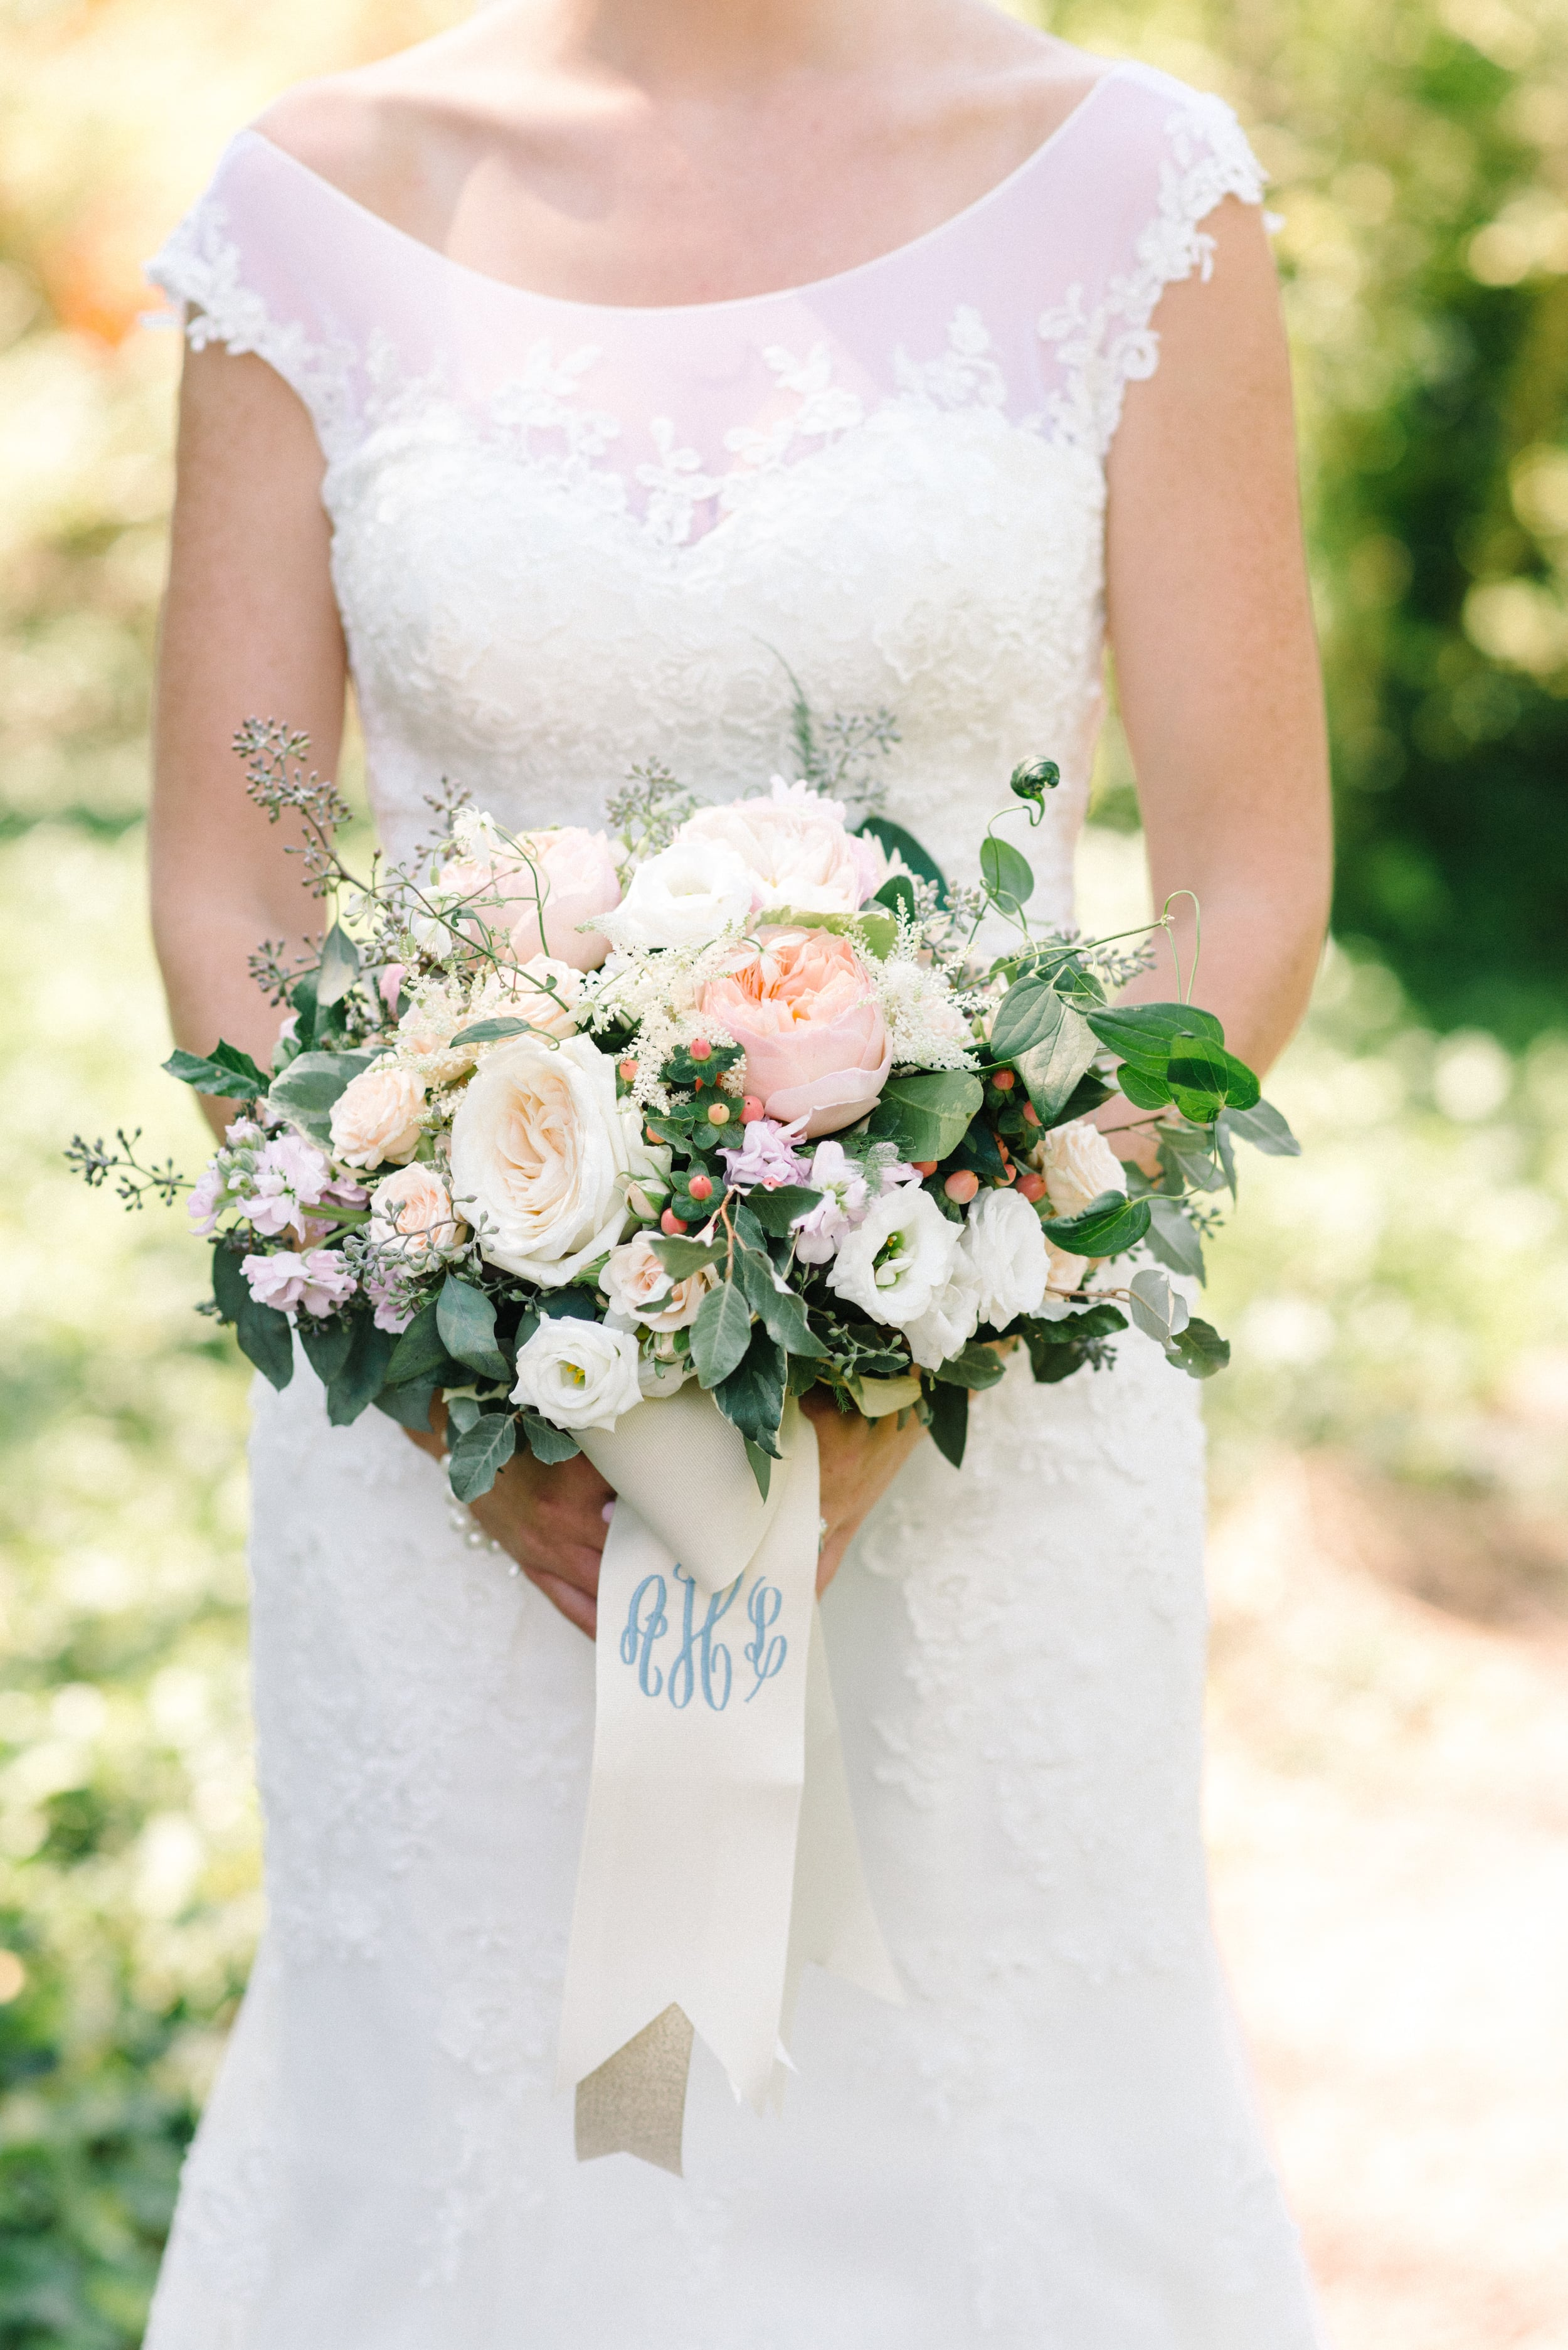 Alexandra's bouquet was gorgeous, with a combination of garden roses, lisianthus, sweet pea, eucalyptus and berries.  Her monogrammed ribbon tails were an added personal touch that we loved, and now offer to all brides!